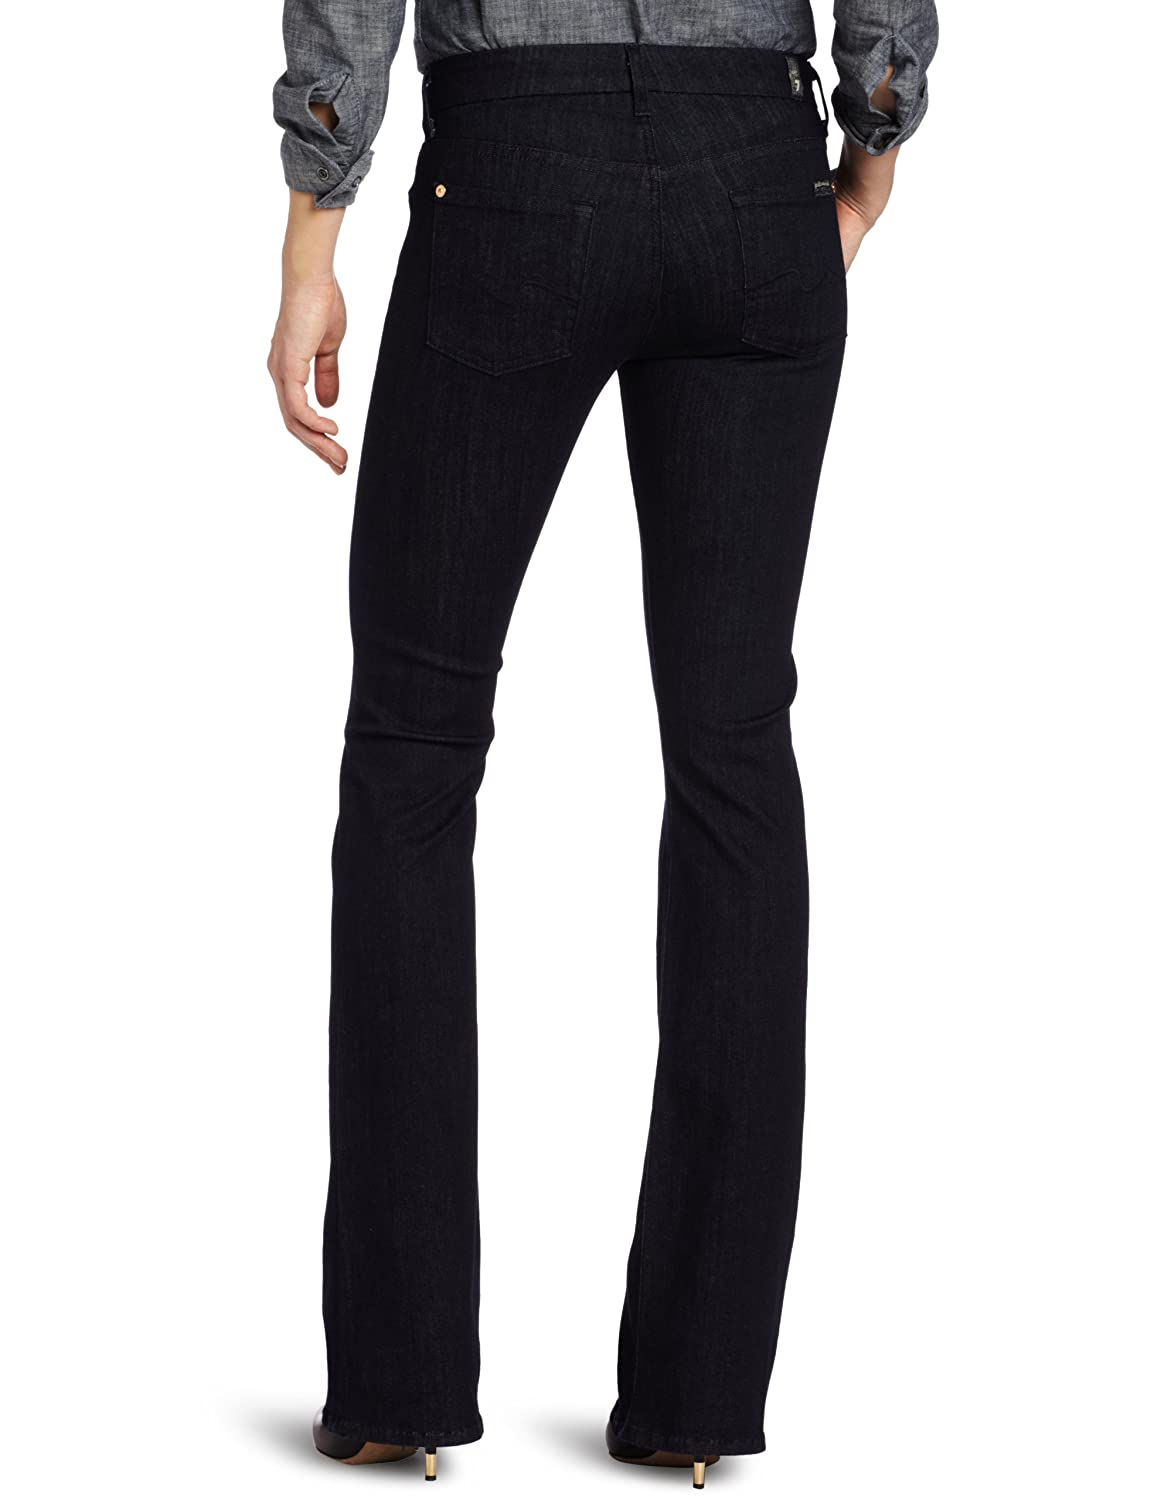 7 For All Mankind Womens Bootcut Jean